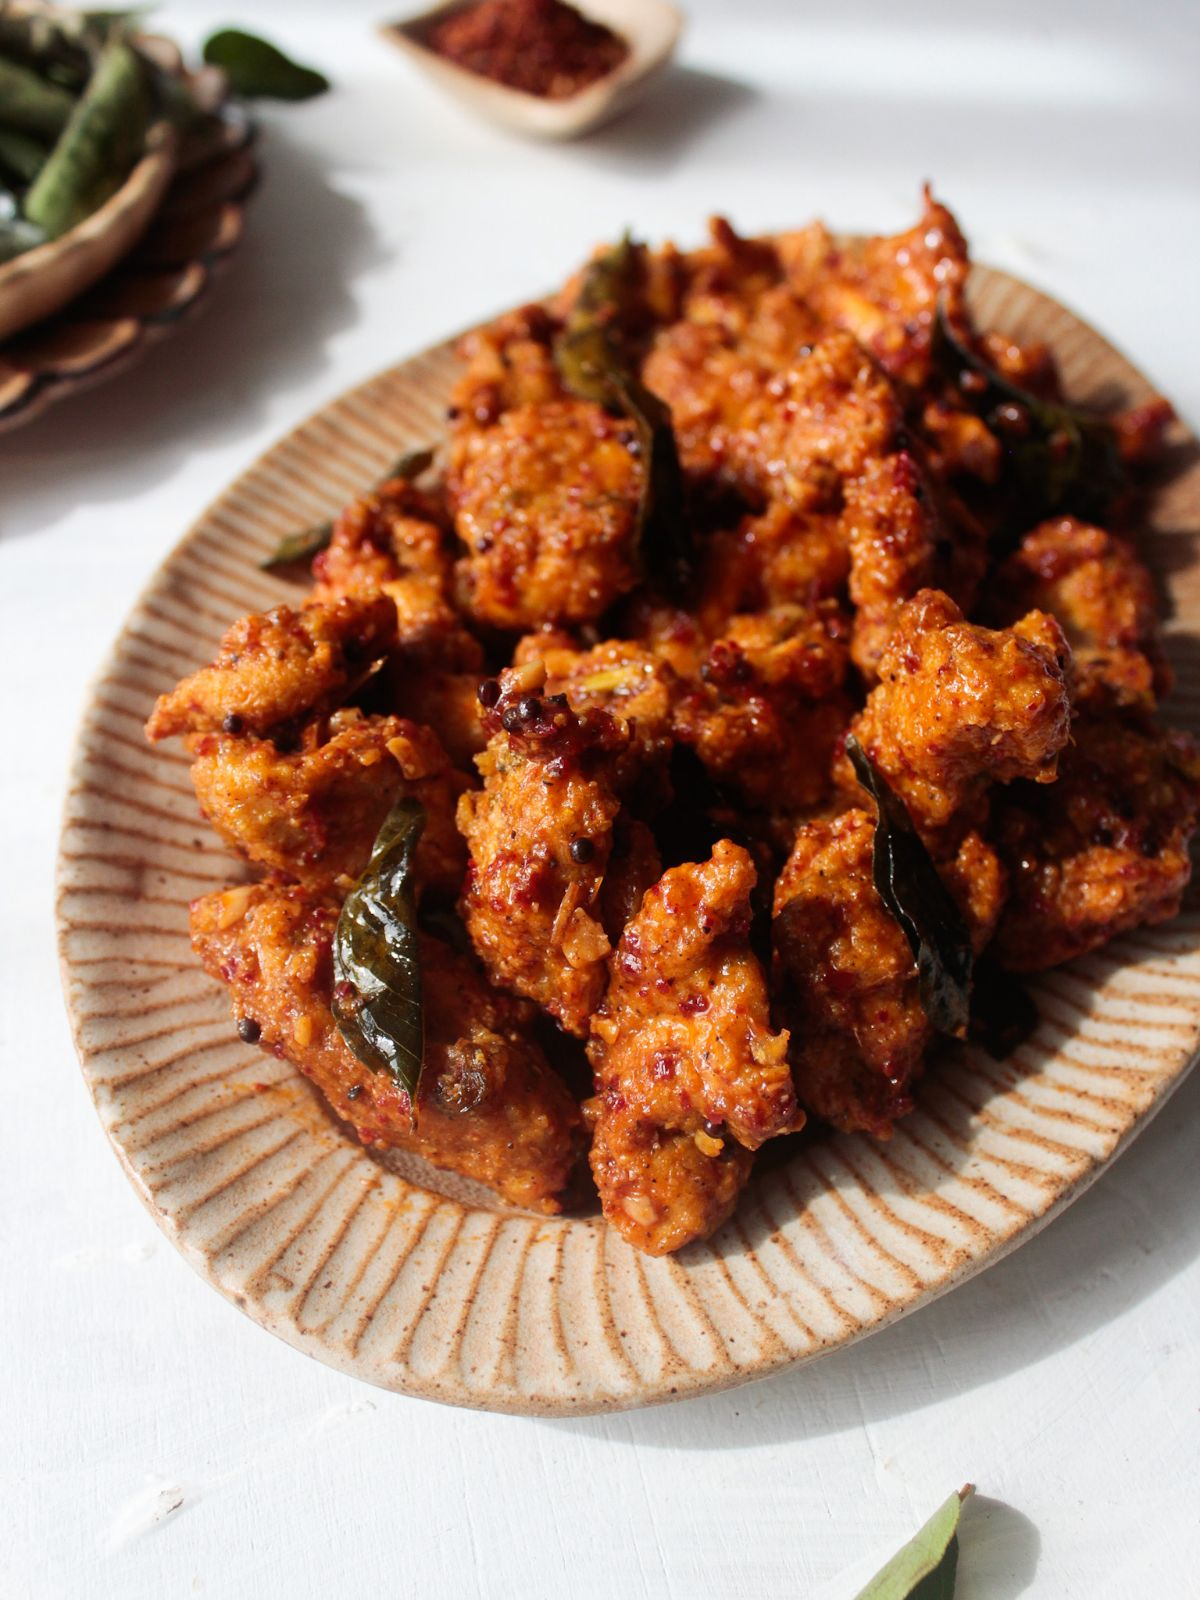 Large platter topped with crispy chicken 65 and fried curry leaves sitting on white table